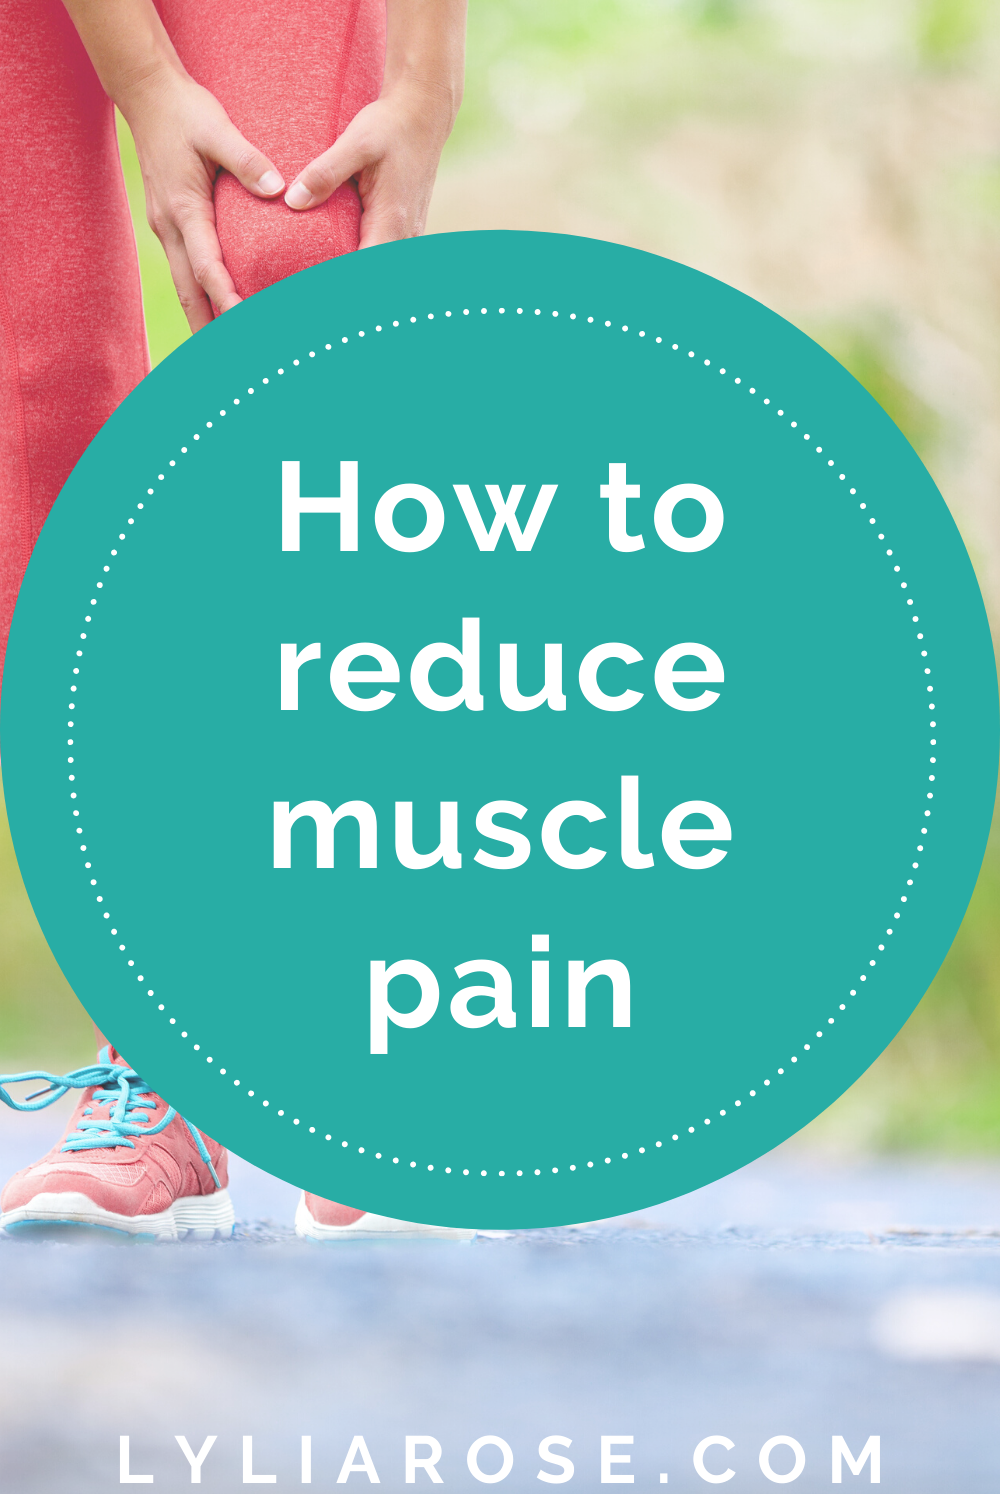 How to reduce muscle pain